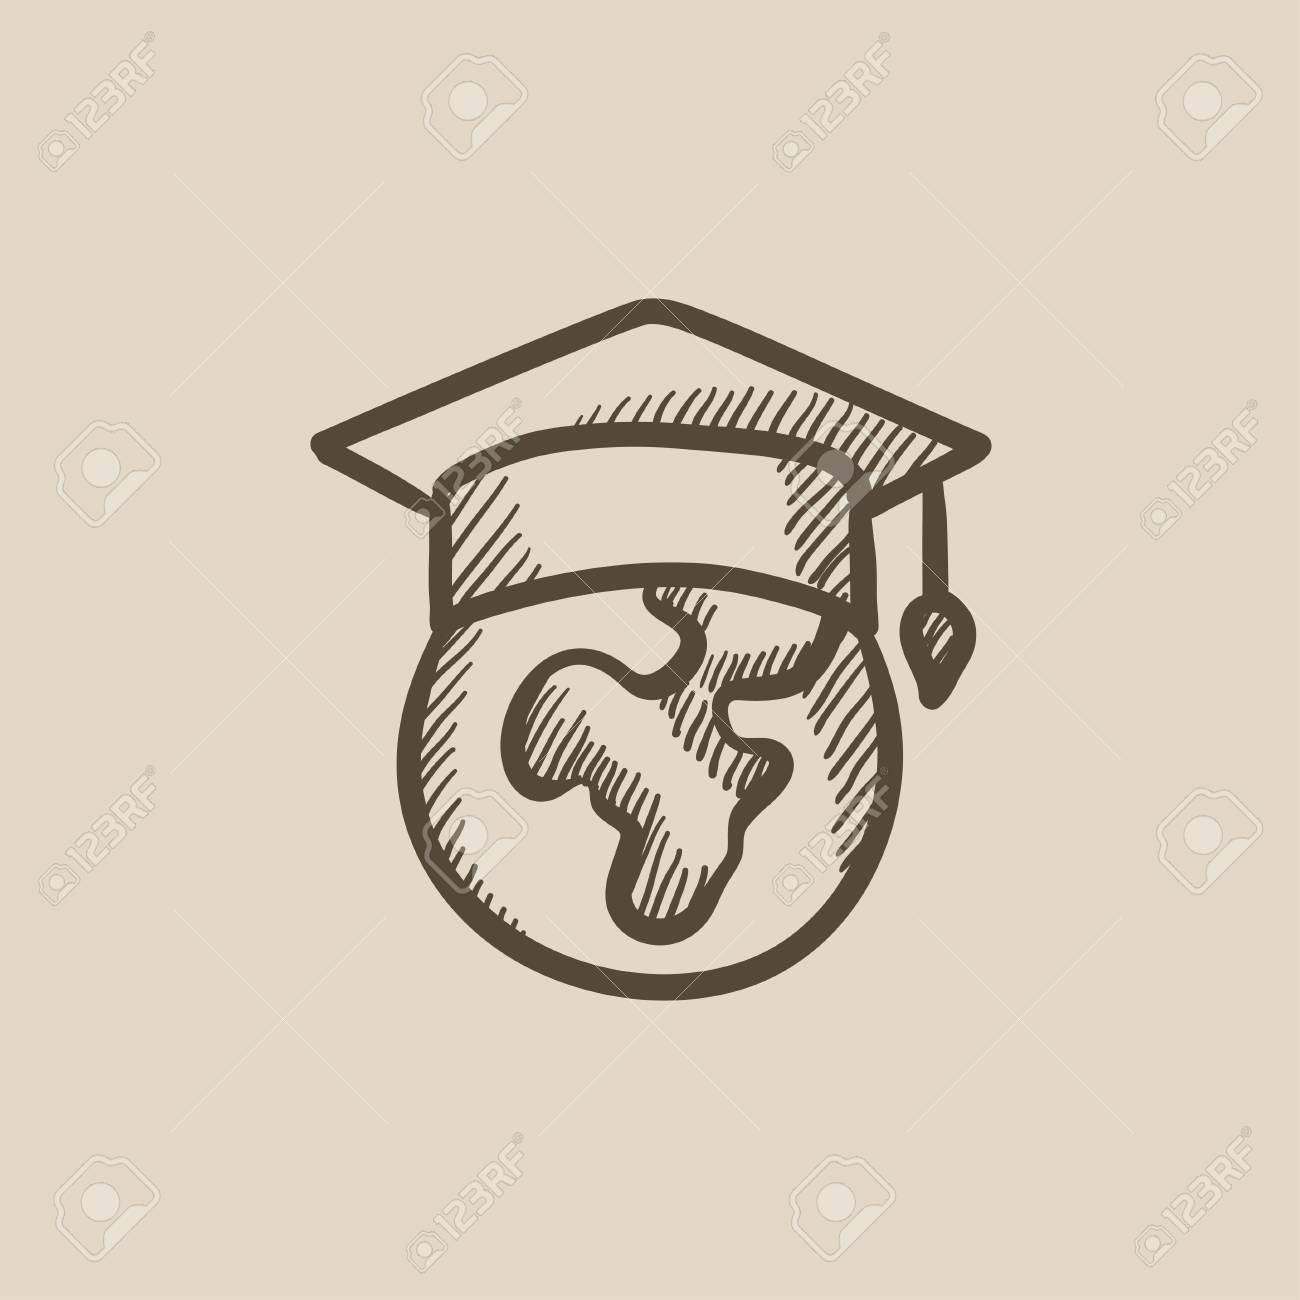 1300x1300 Globe In Graduation Cap Vector Sketch Icon Isolated On Background